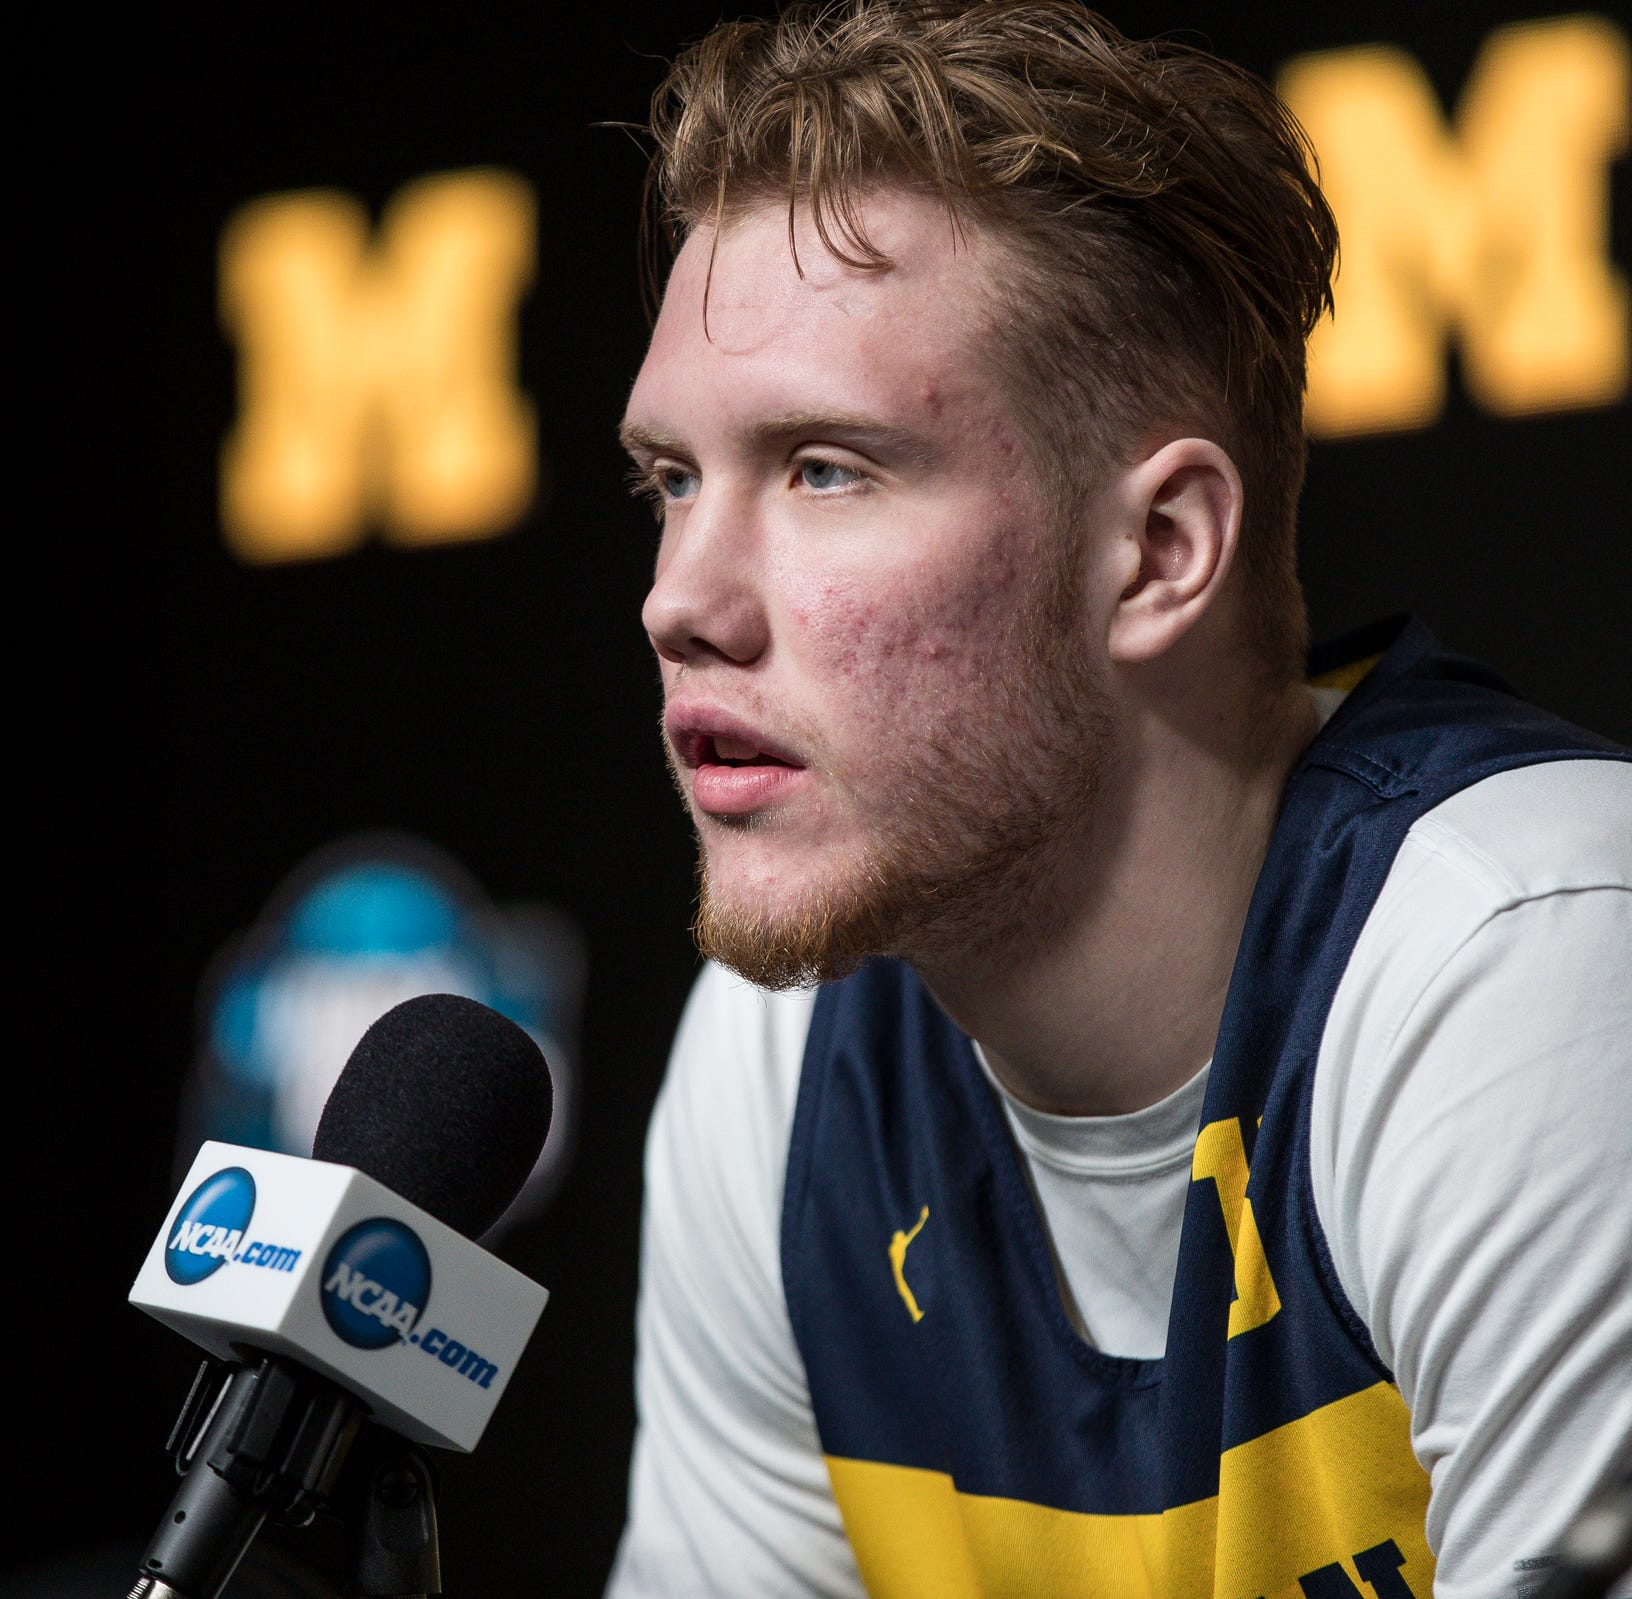 Michigan basketball's Ignas Brazdeikis staying in 2019 NBA draft